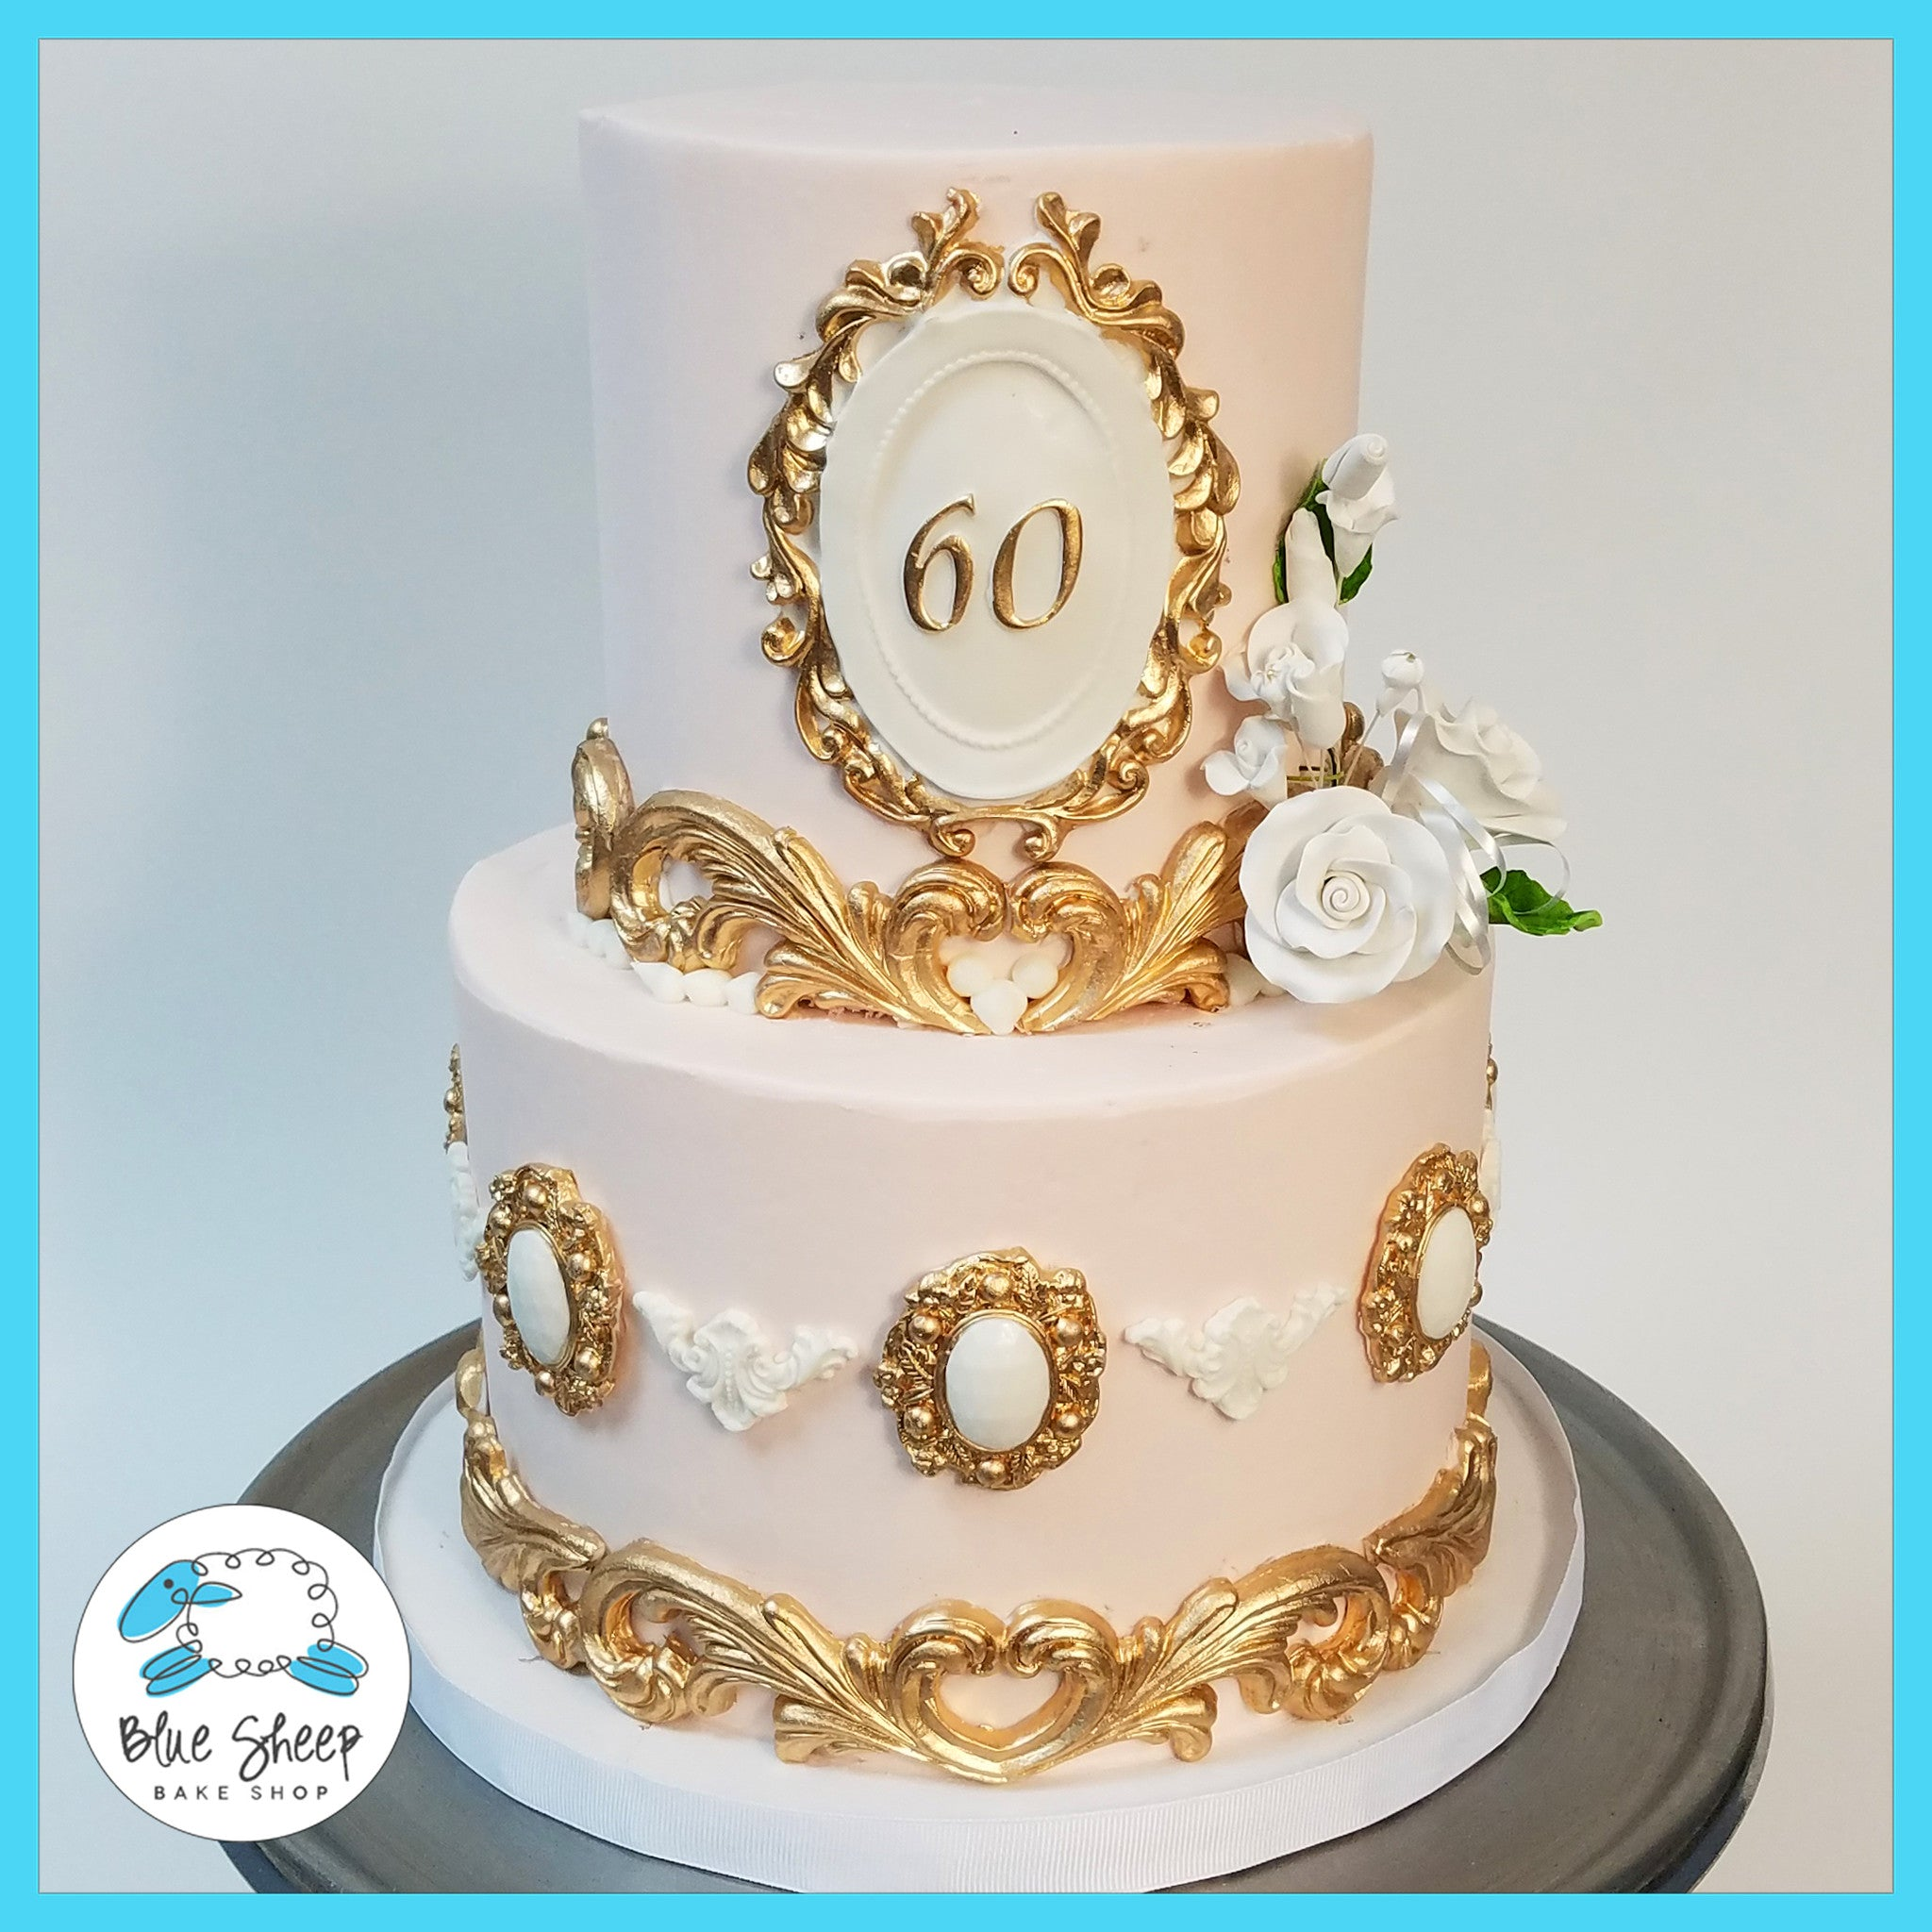 Pleasant Pink And Gold Vintage 60Th Birthday Cake Nj Blue Sheep Bake Shop Personalised Birthday Cards Paralily Jamesorg